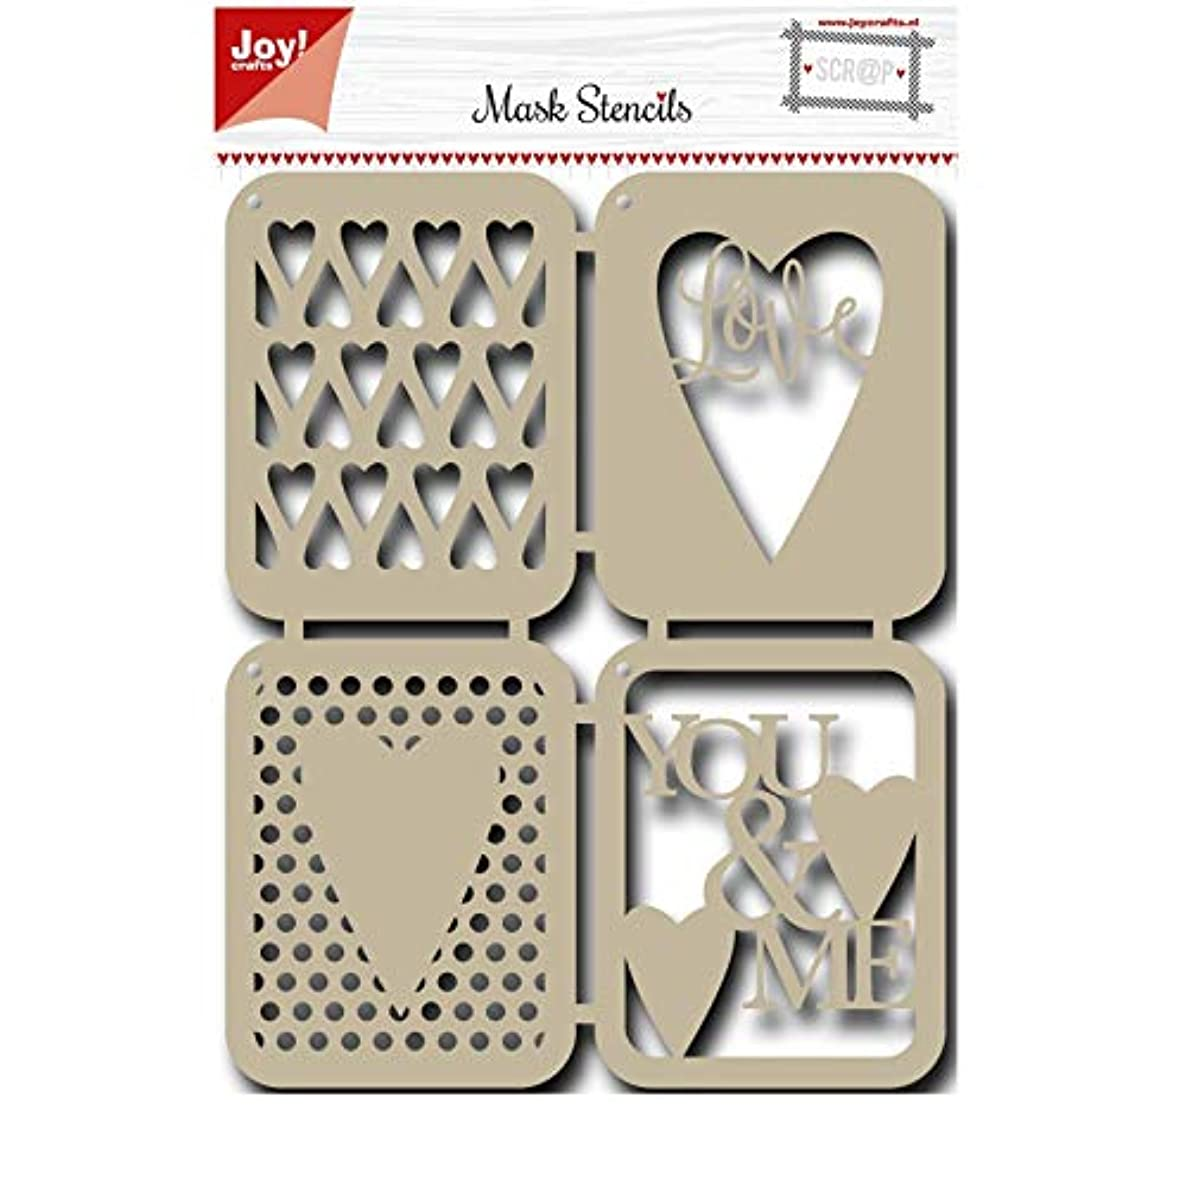 Joy!Crafts Love Design Mask Stencil, Metal, Grey, One Size